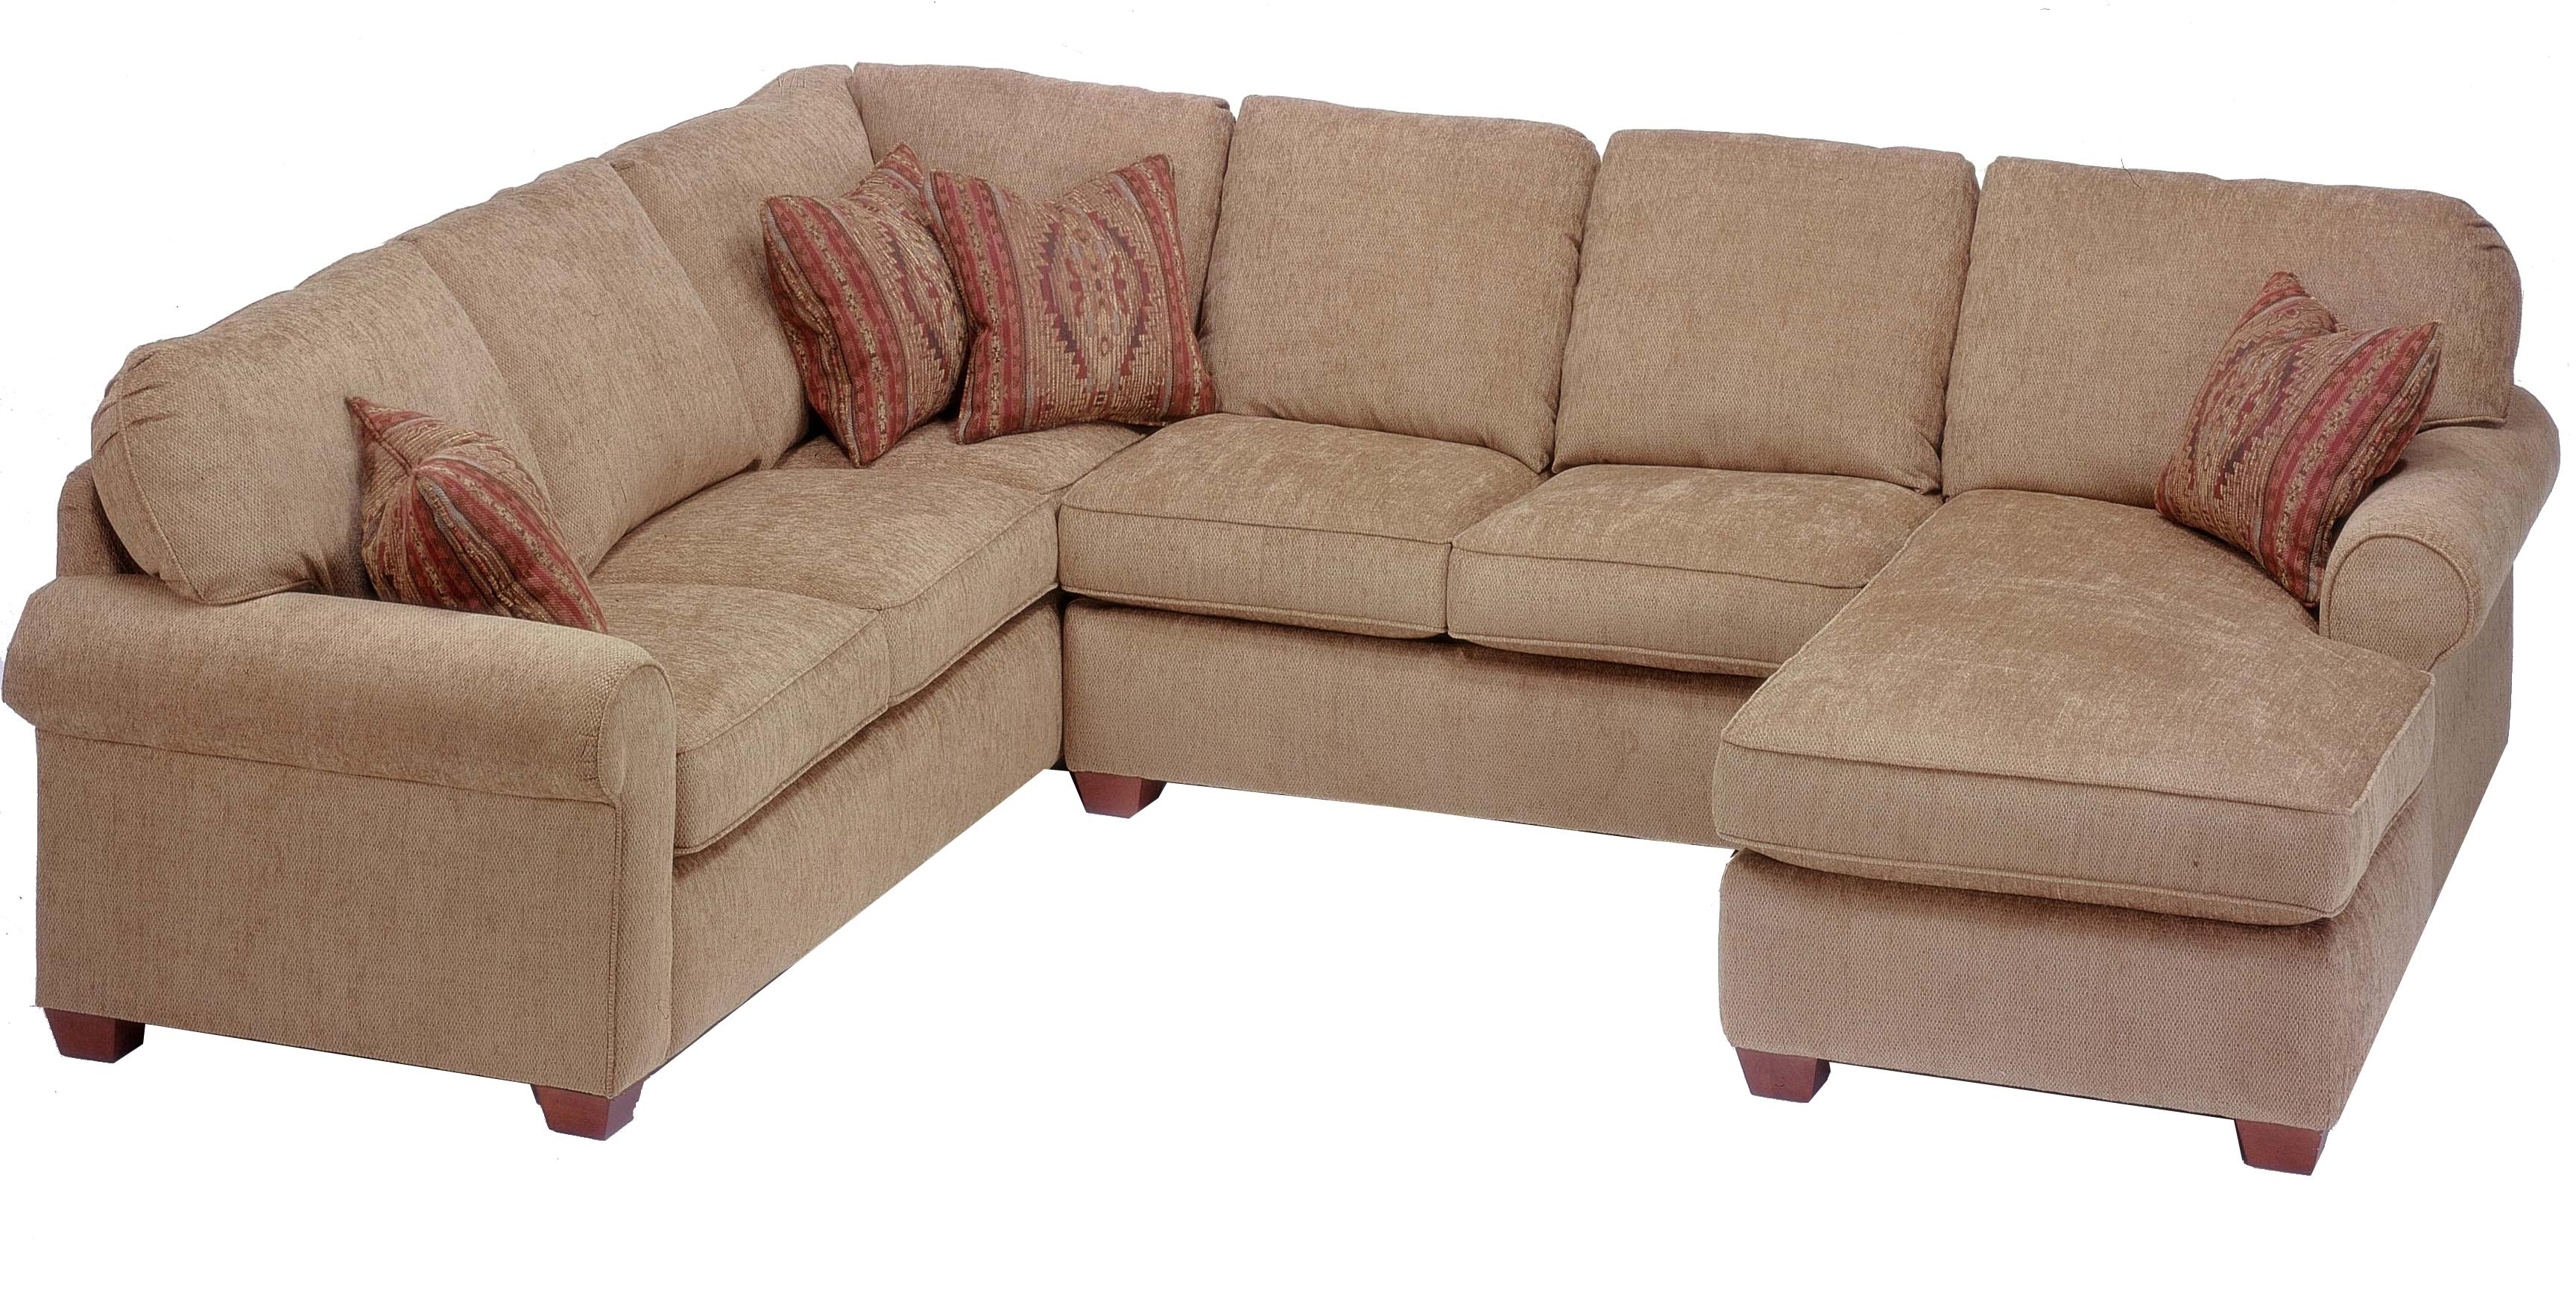 Flexsteel Thornton 3 Piece Sectional With Chaise – Ahfa – Sofa Pertaining To Newest Hickory Nc Sectional Sofas (View 15 of 20)